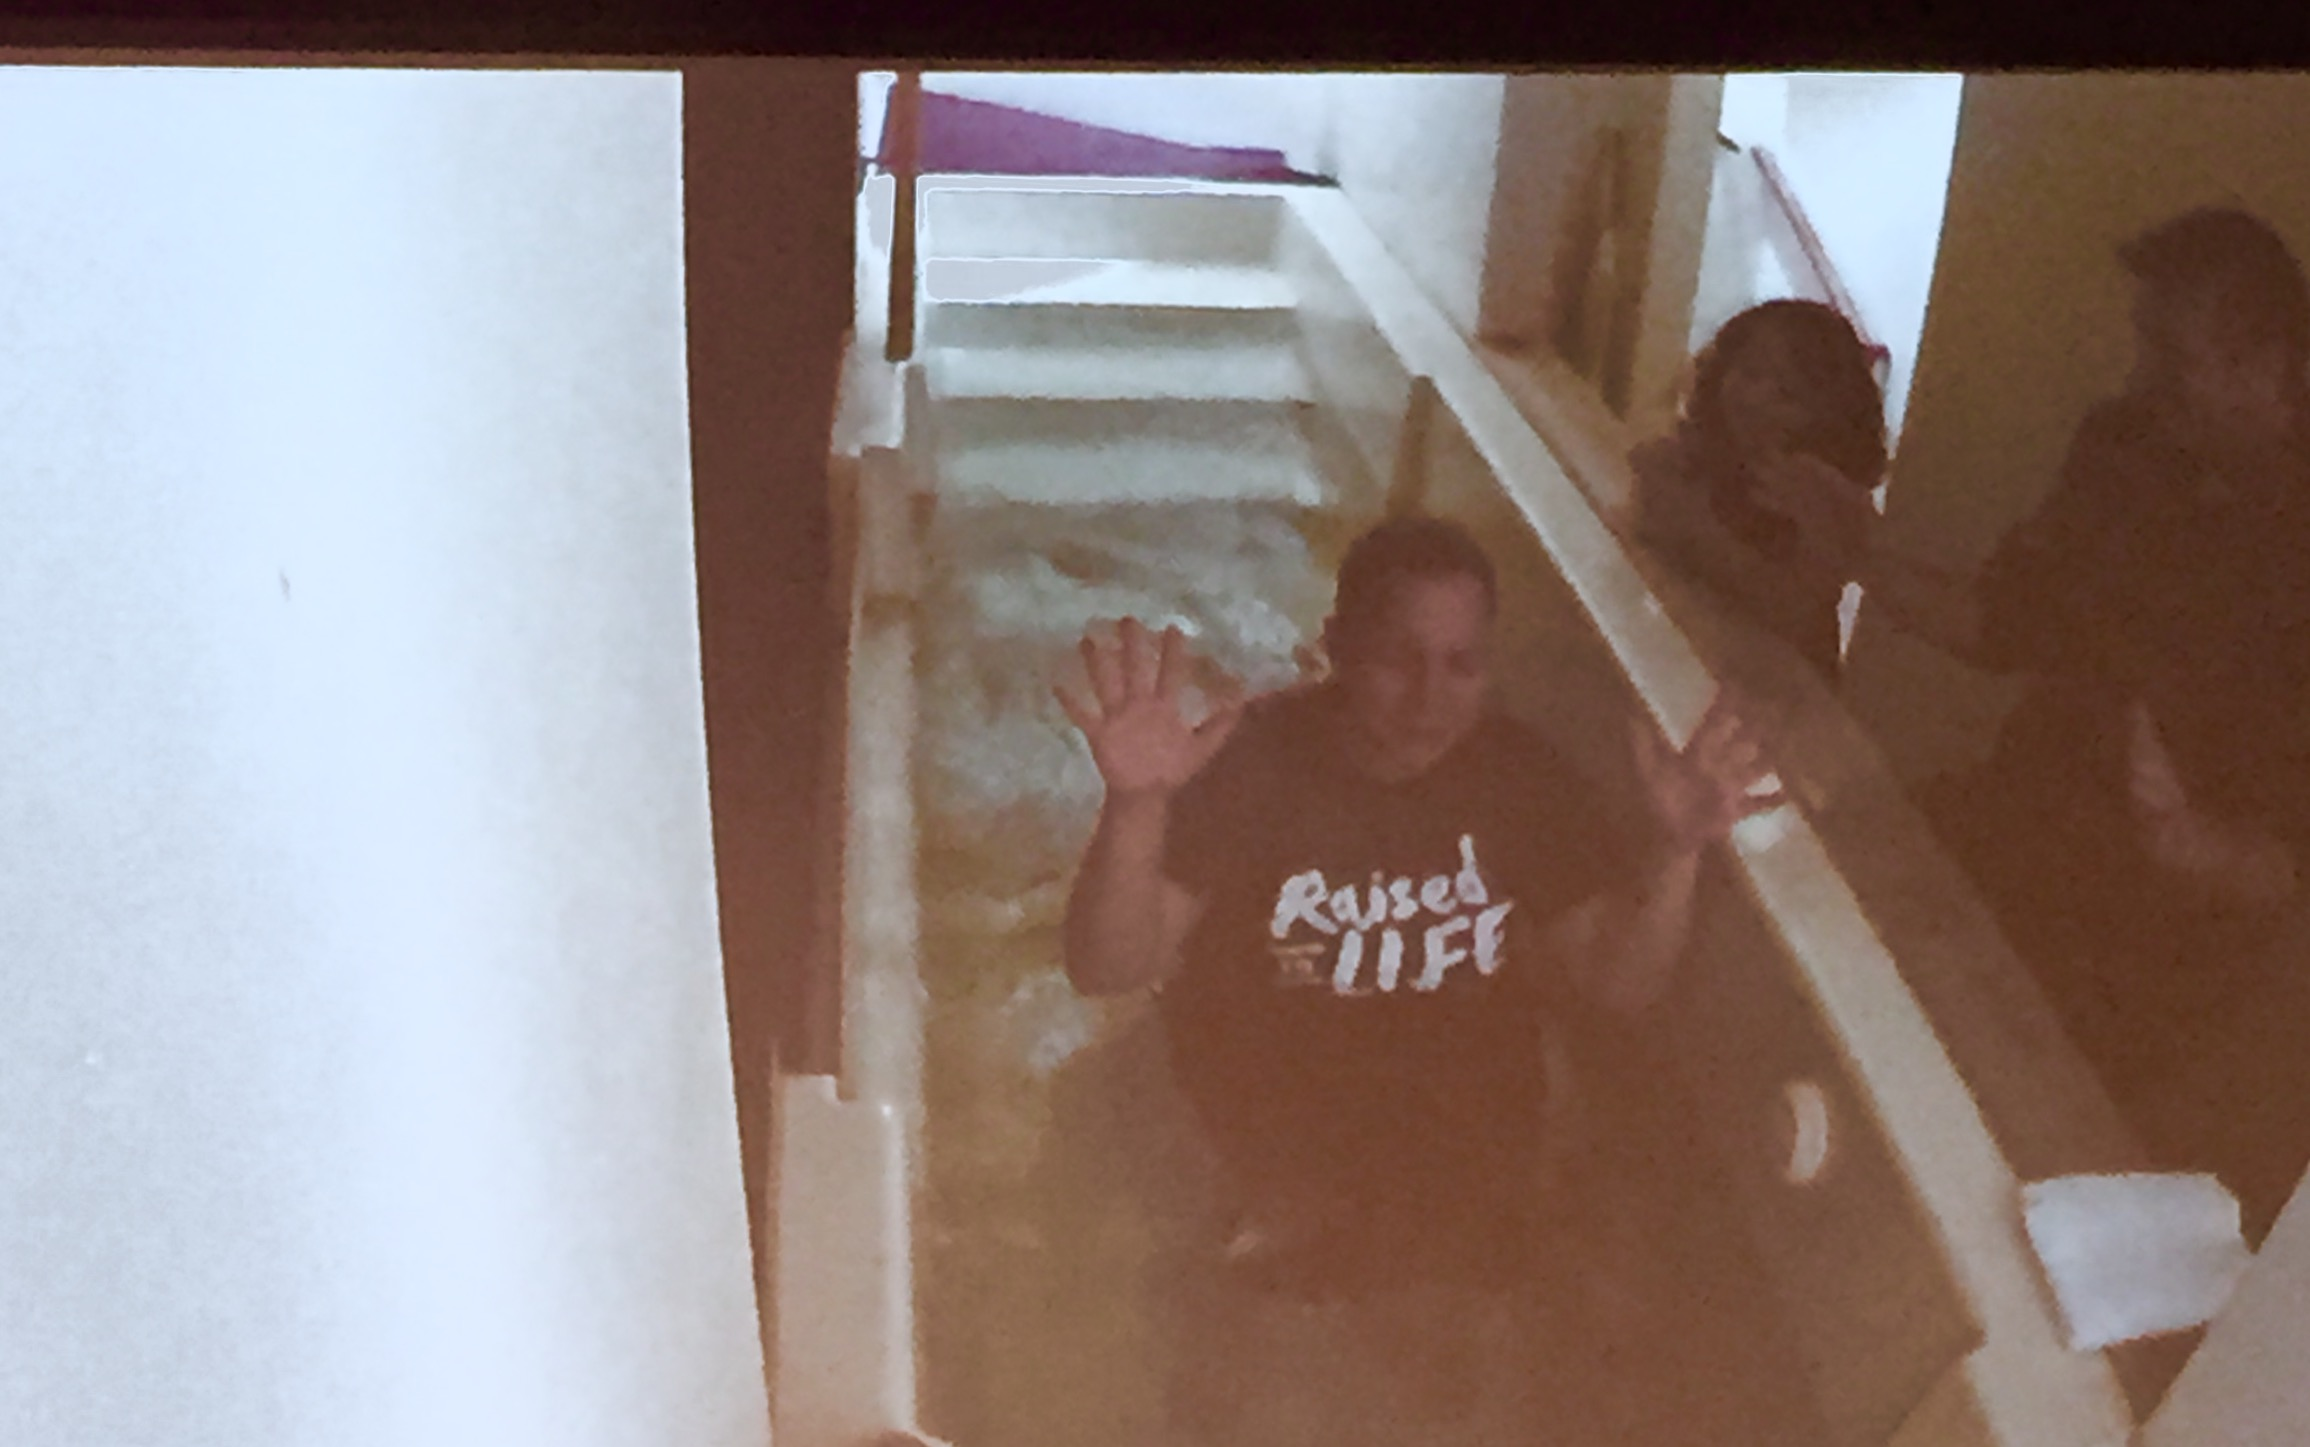 I never get tired of seeing new believers declare their new association in BAPTISM!